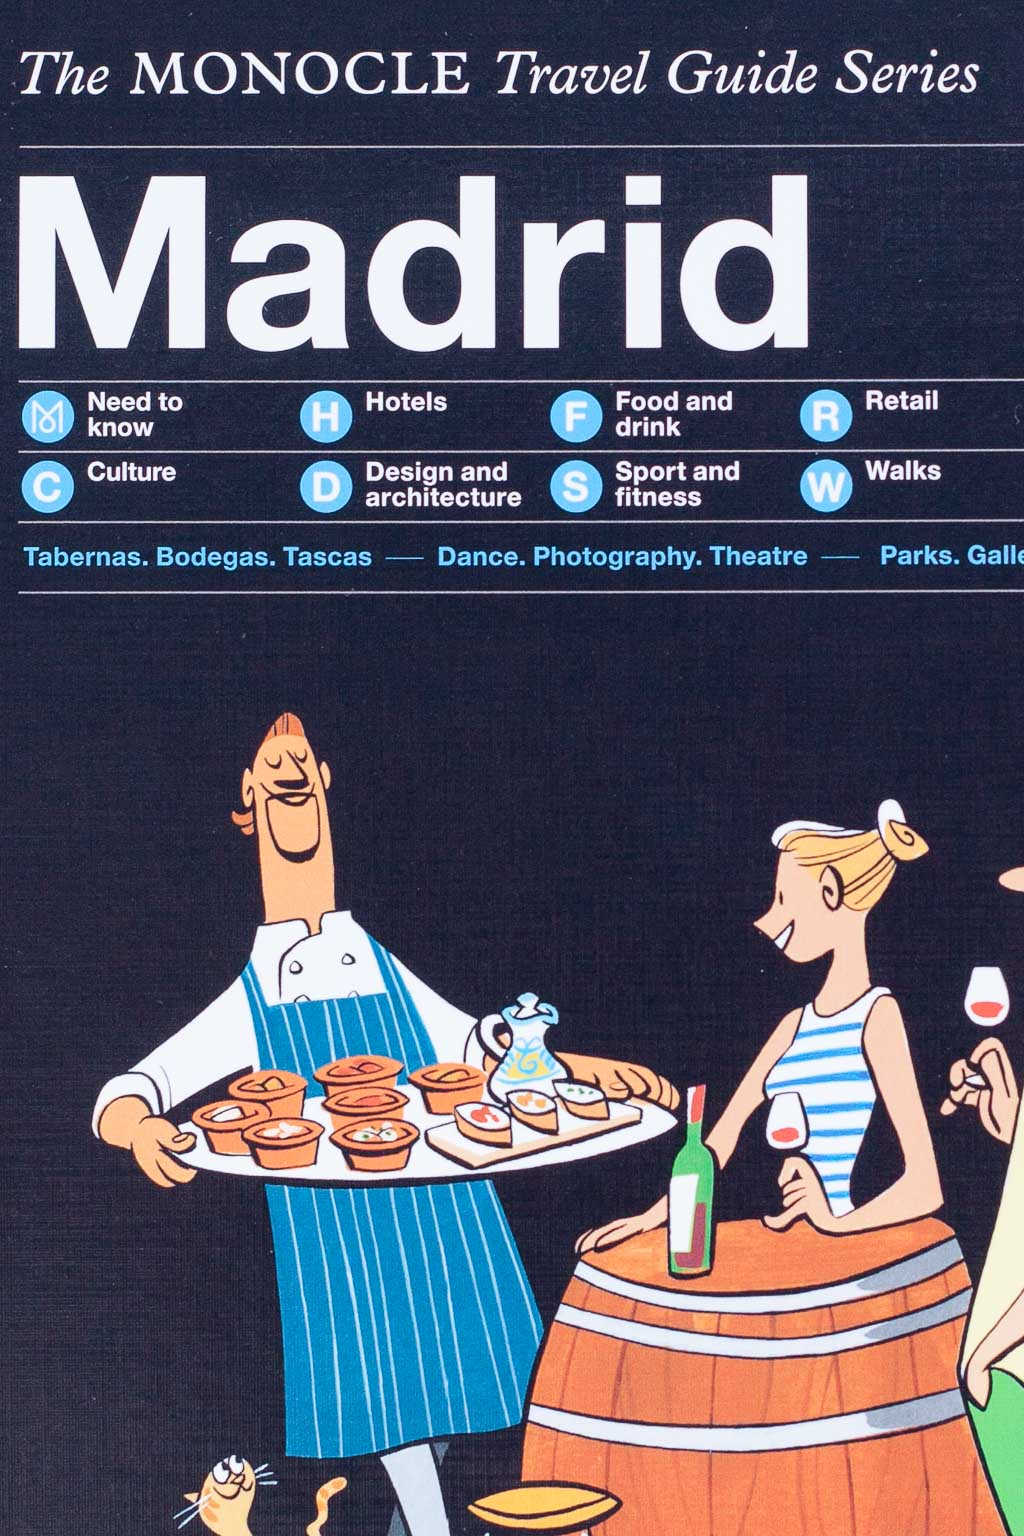 The Monocle Travel Guide Series - Madrid